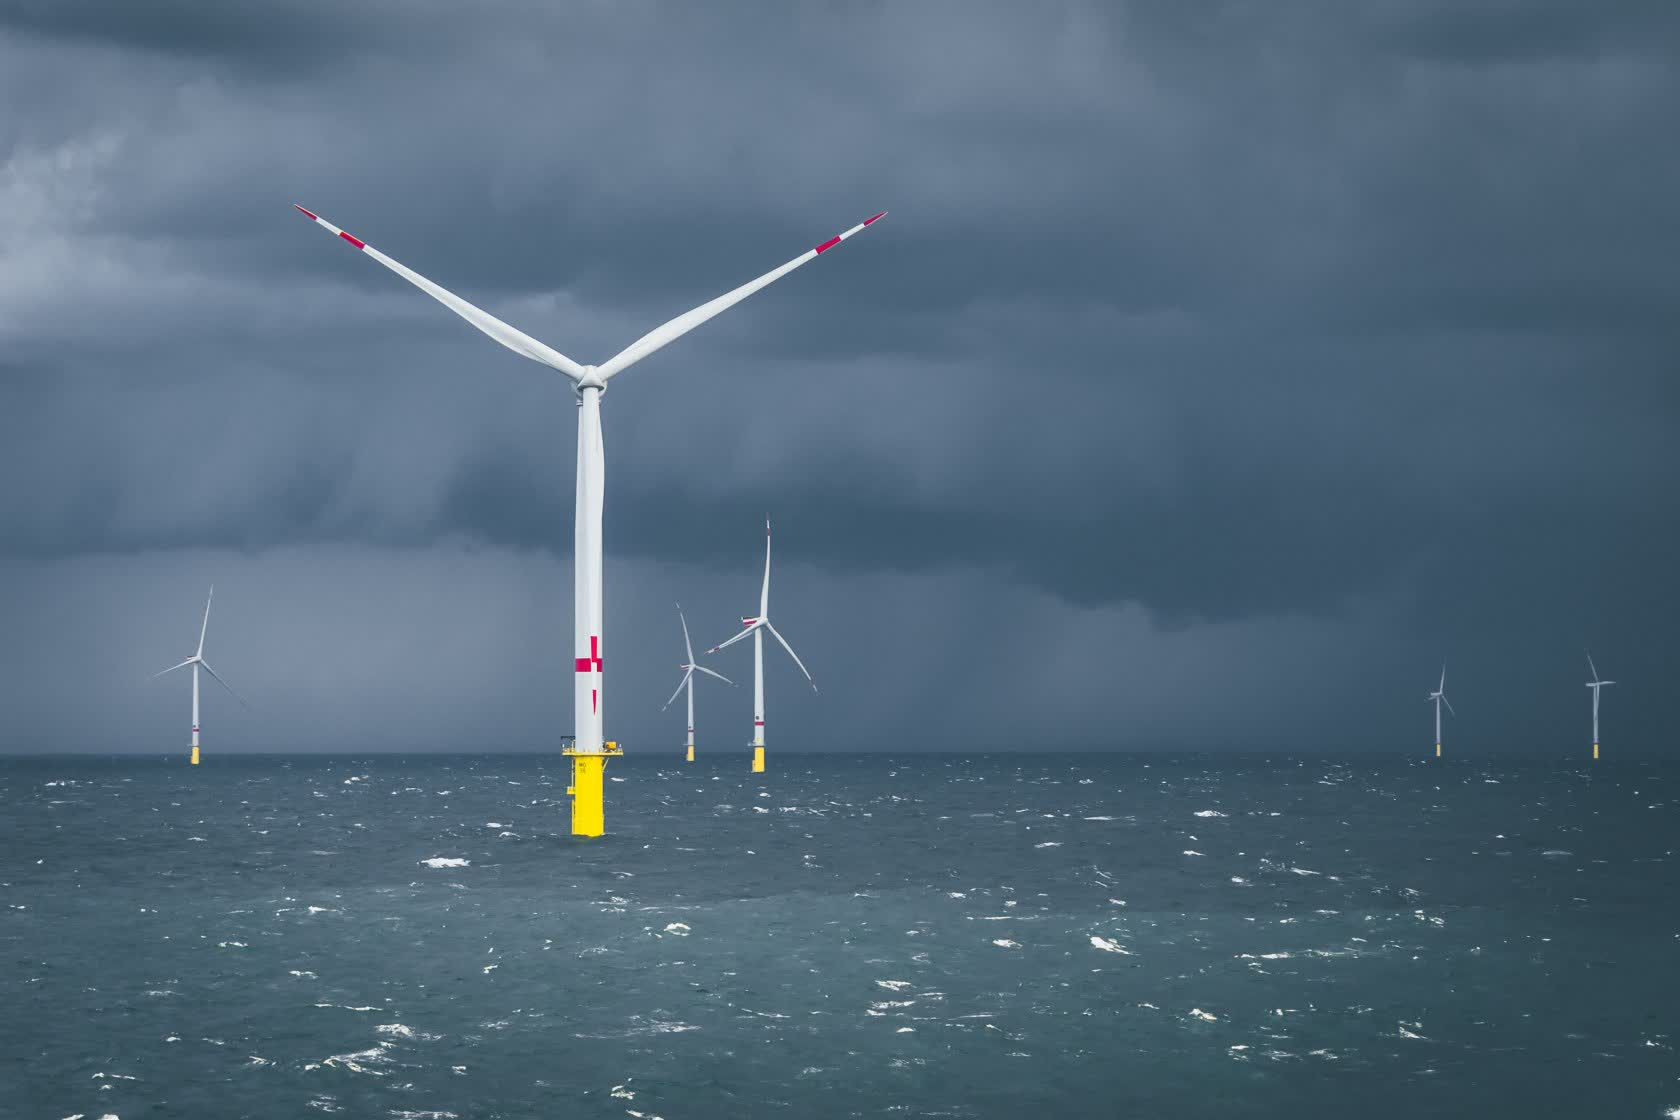 The UK aims to power each home with wind energy by 2030